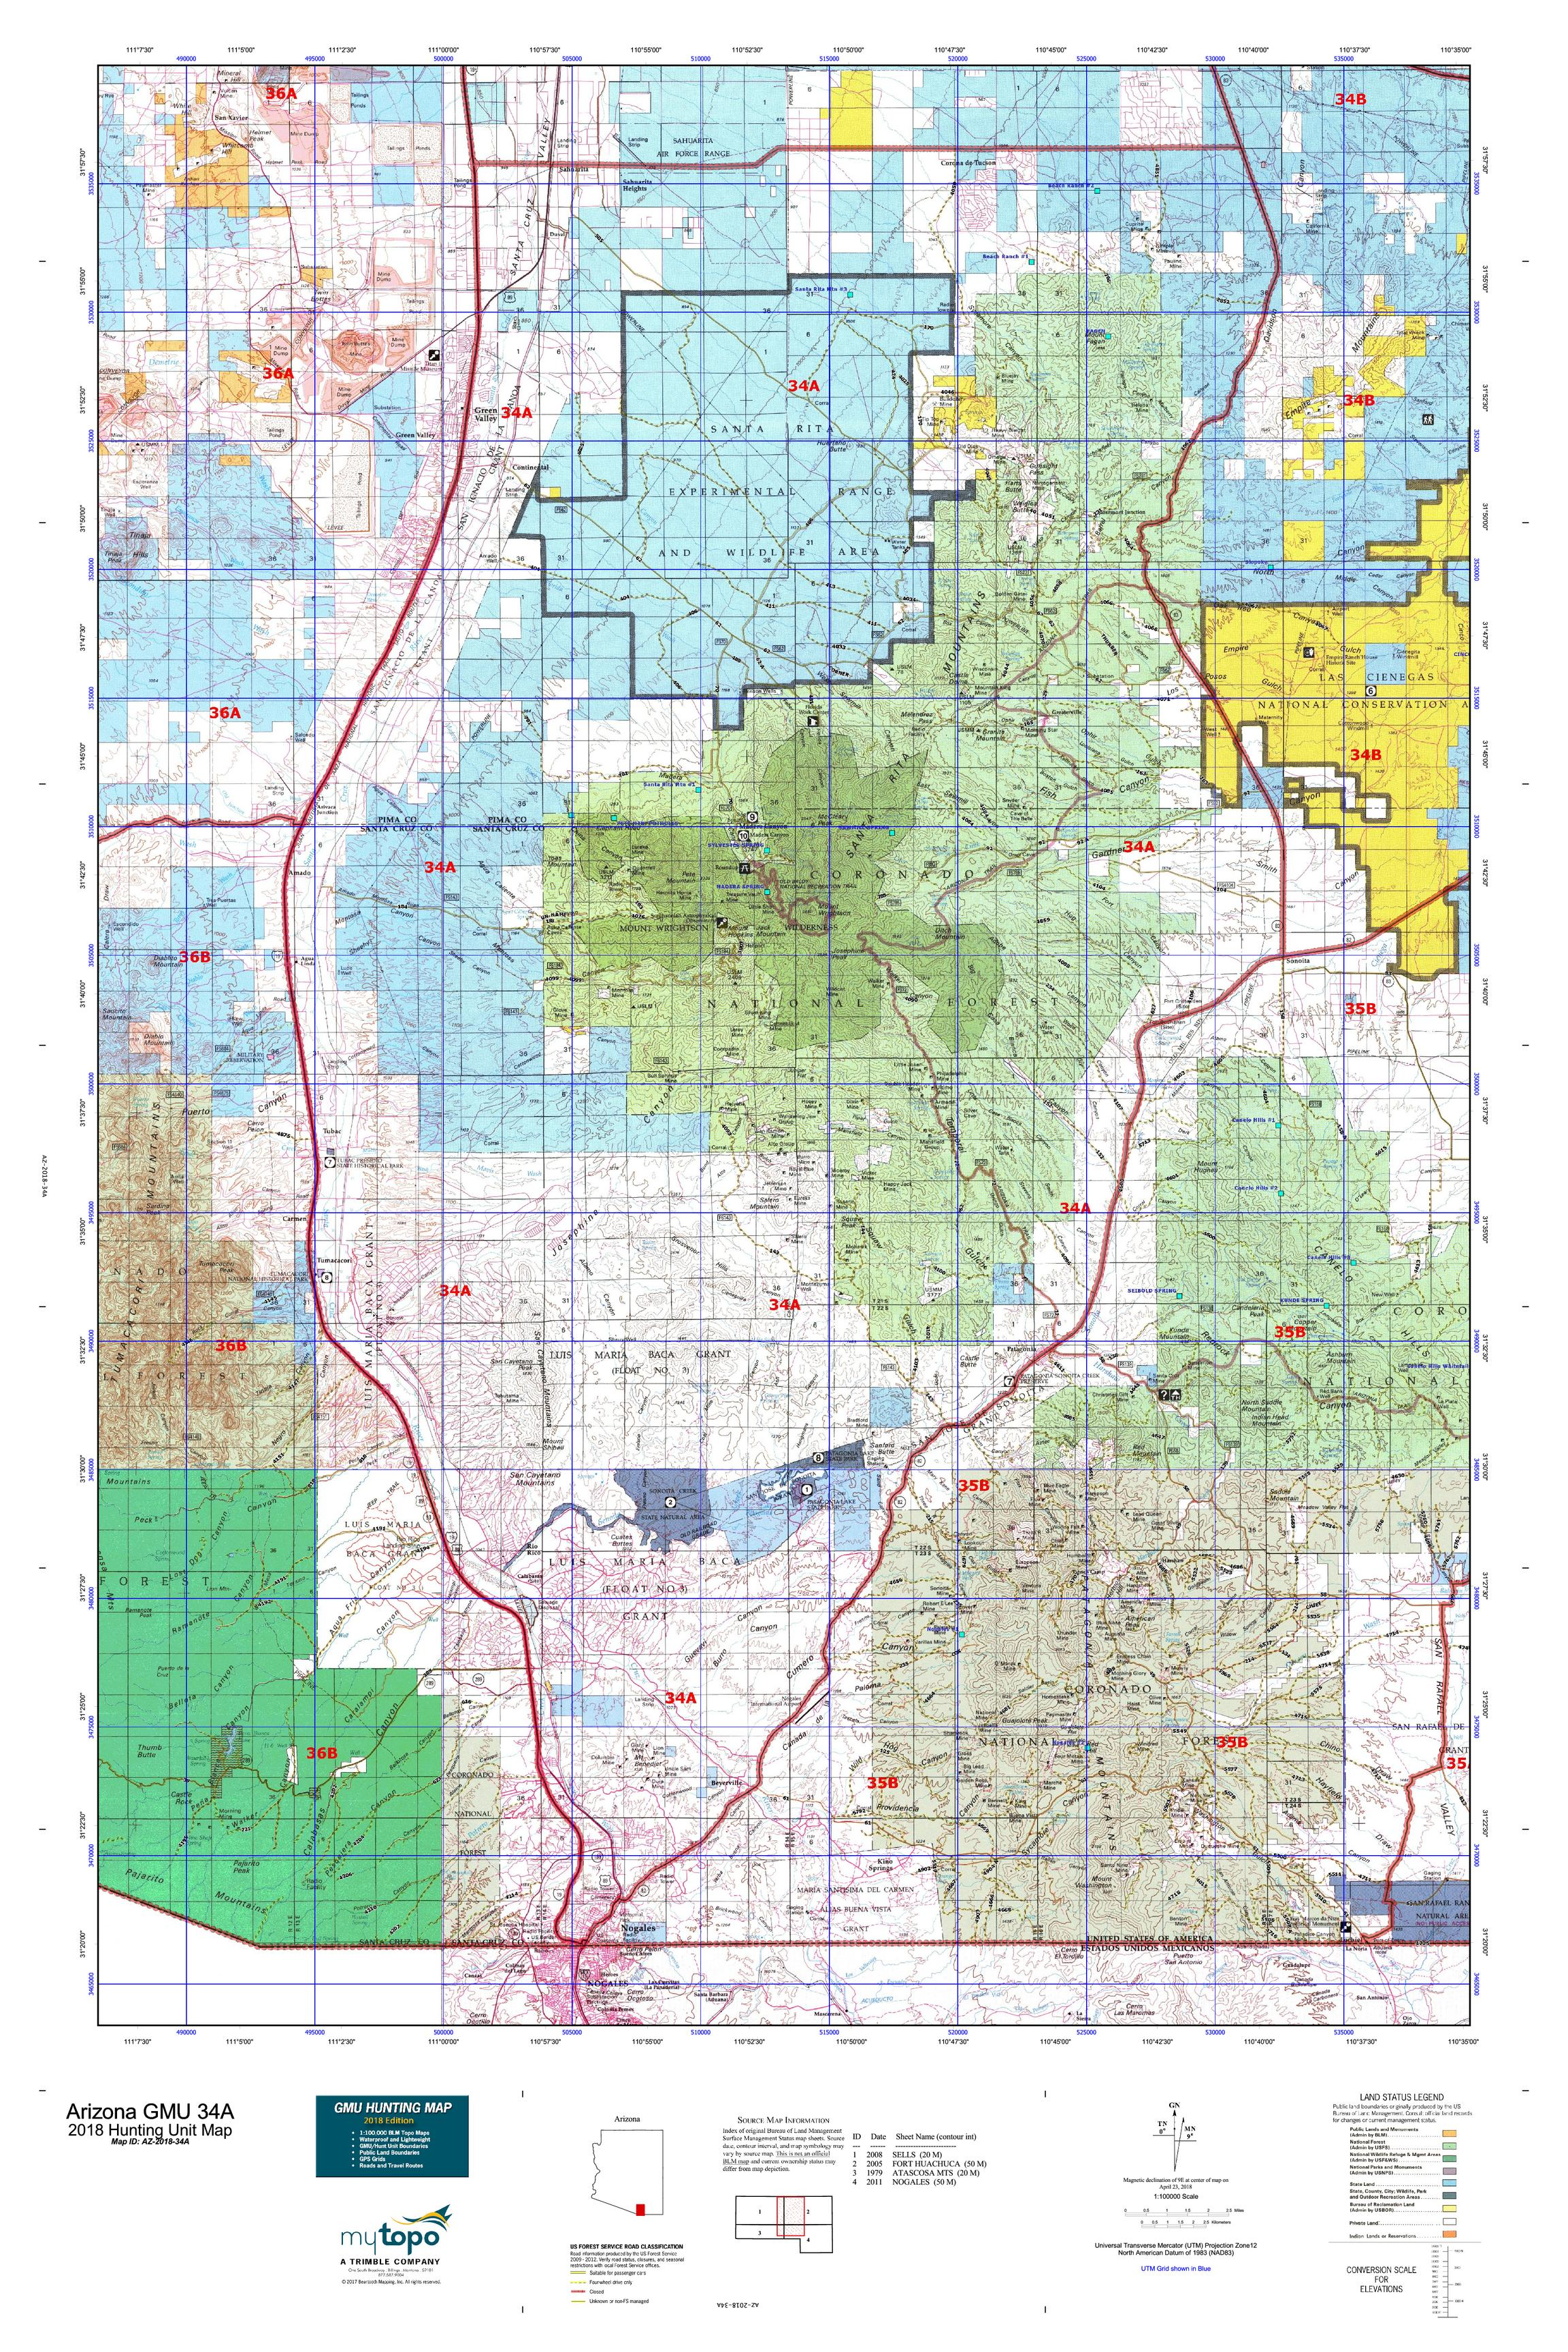 Travel Map Of Arizona.Arizona Gmu 34a Map Mytopo